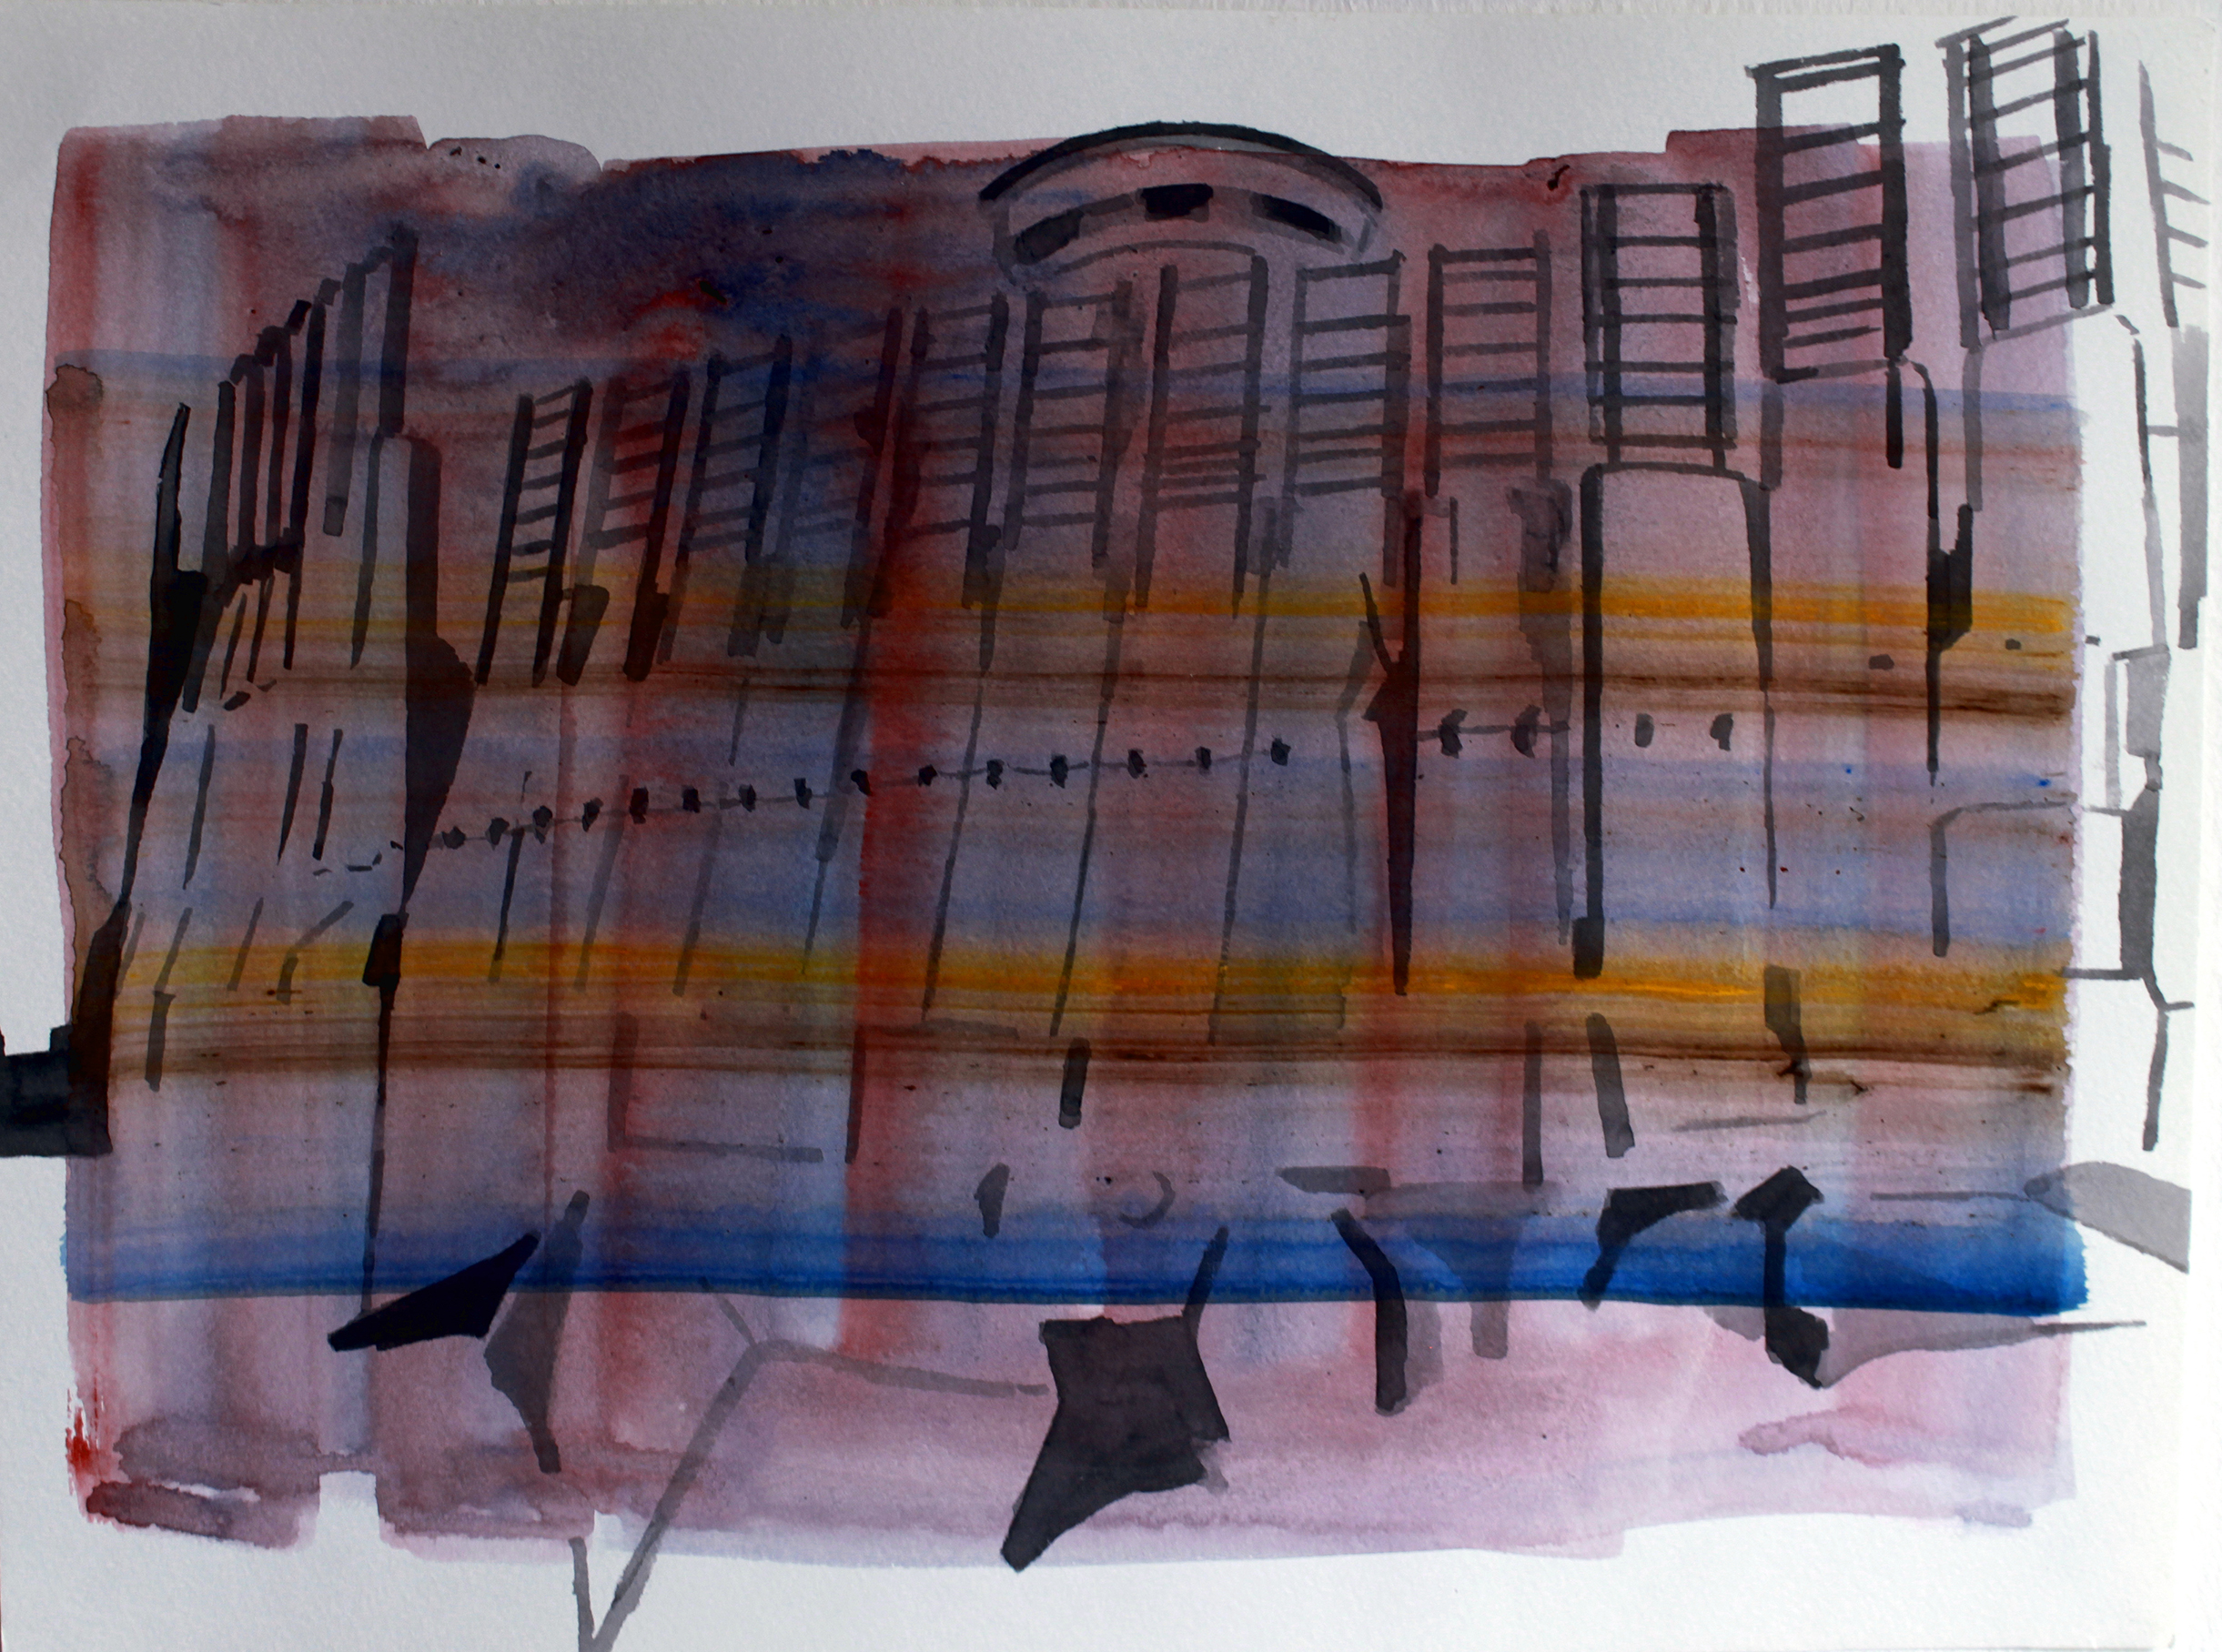 SEPERATION BARRIER, Watercolour on paper, 30.5 x 40.5cm, 2014,